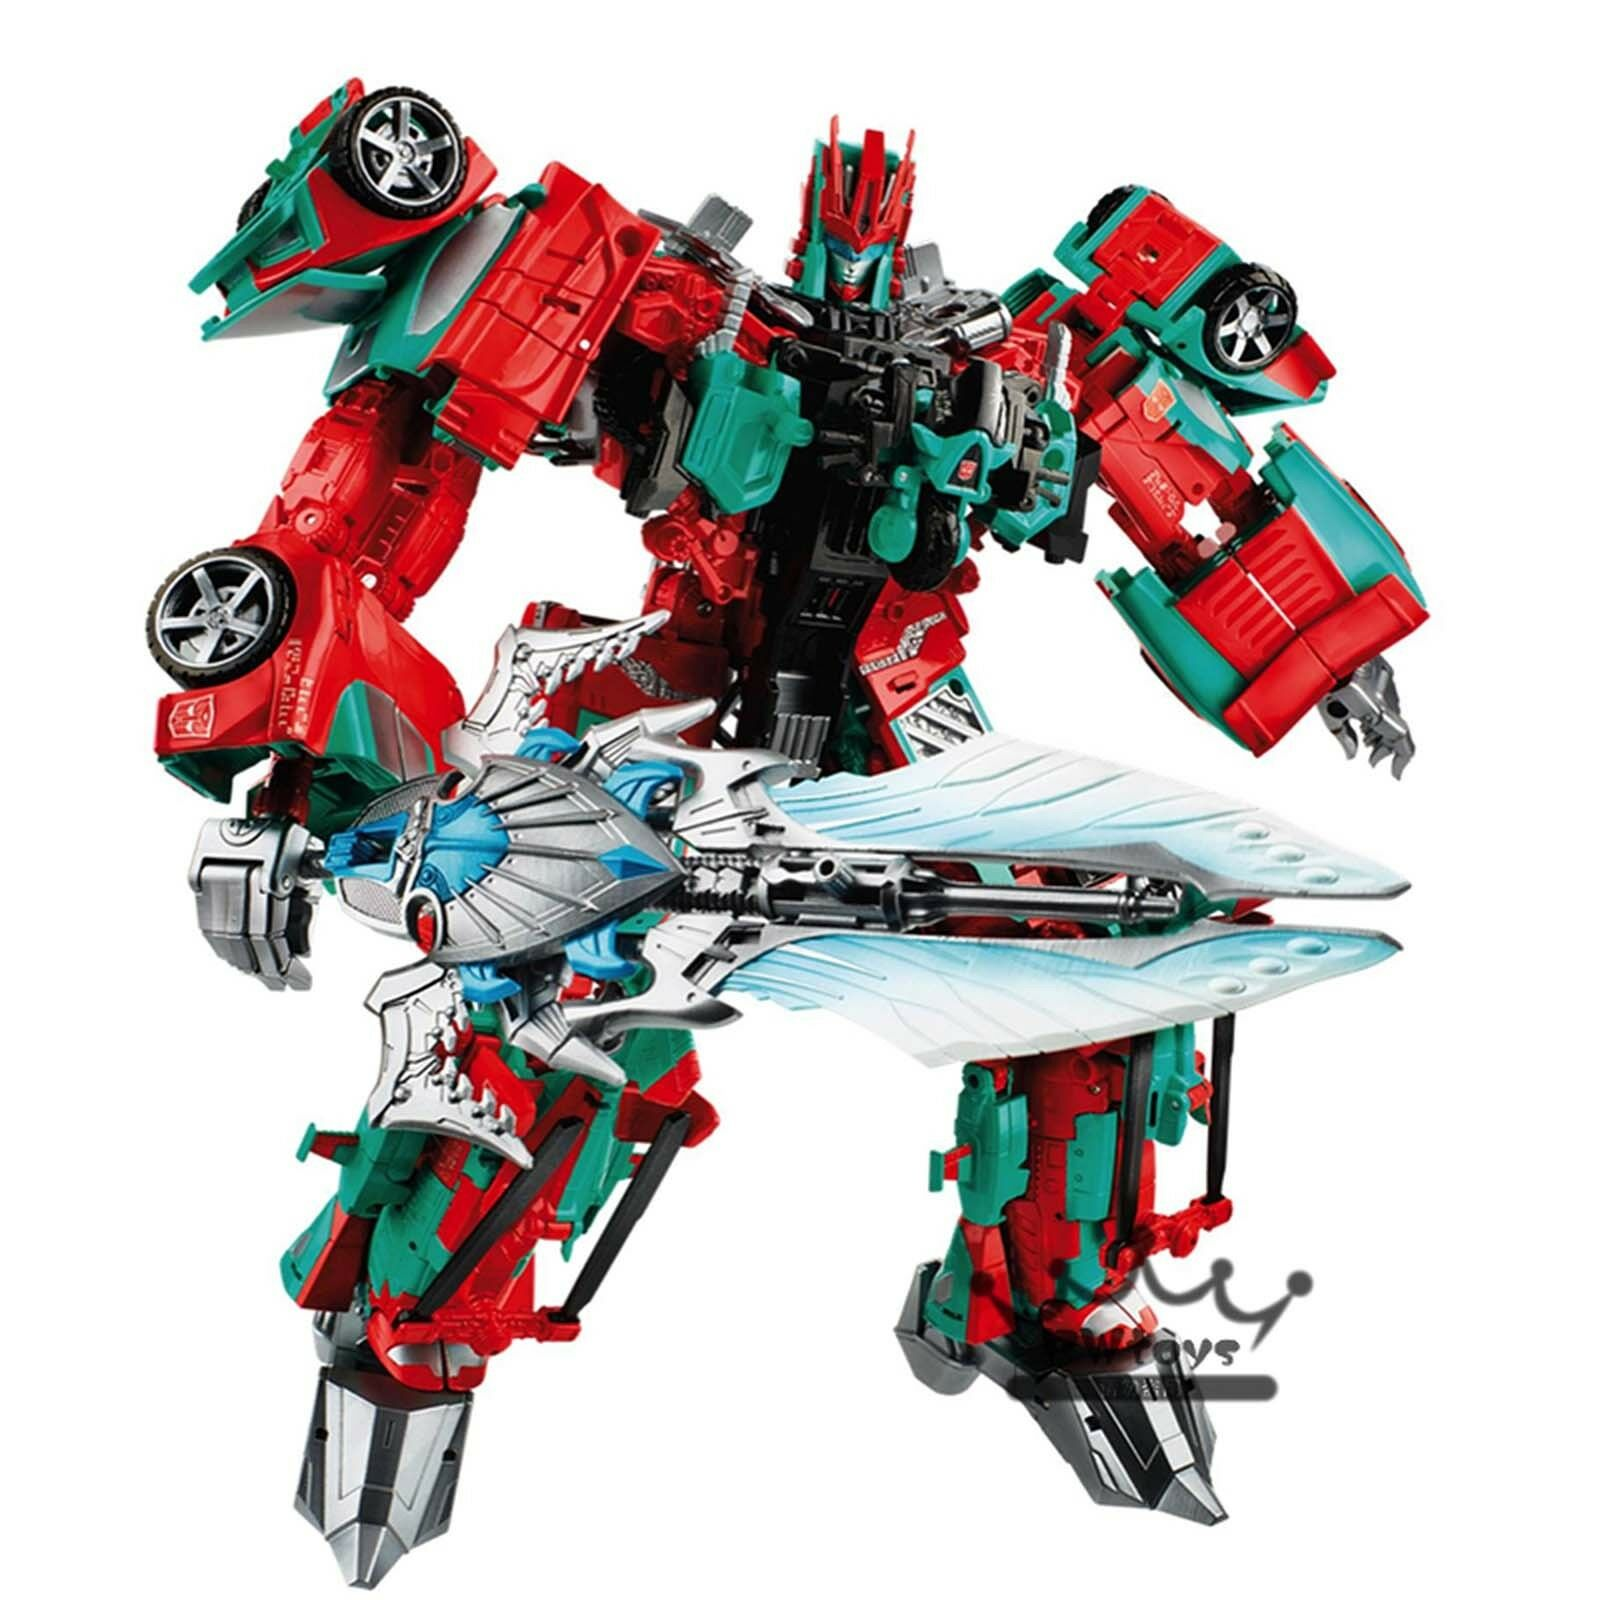 Transformers IDW IDW IDW Combiner Wars VICTORION G2 Action Figure Collection Toy Gift 22bdec